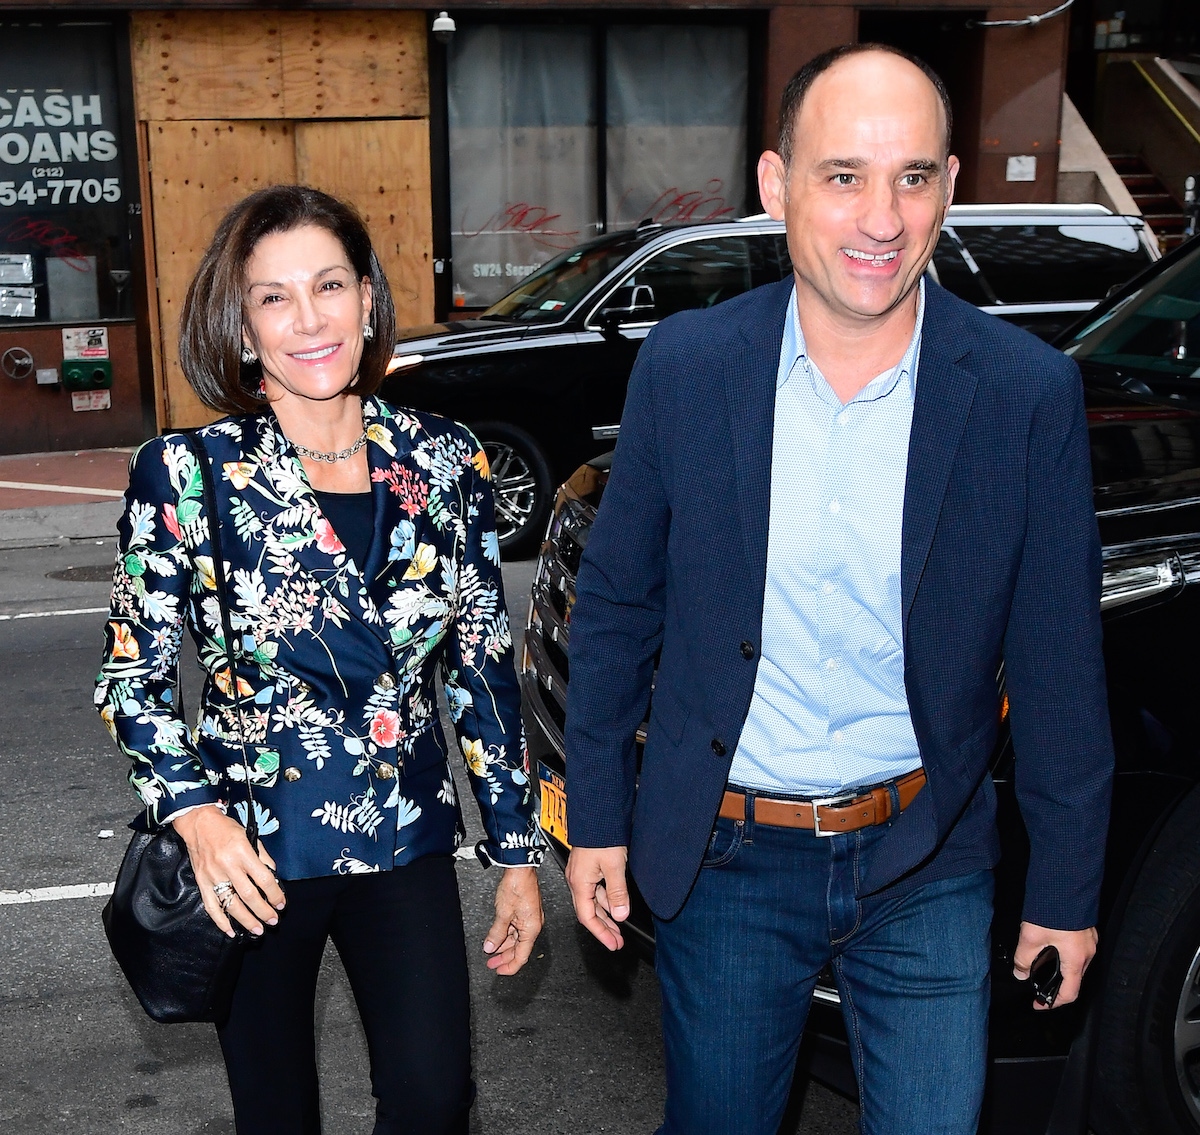 Hilary Farr and David Visentin arrive for a TODAY show appearance in 2019